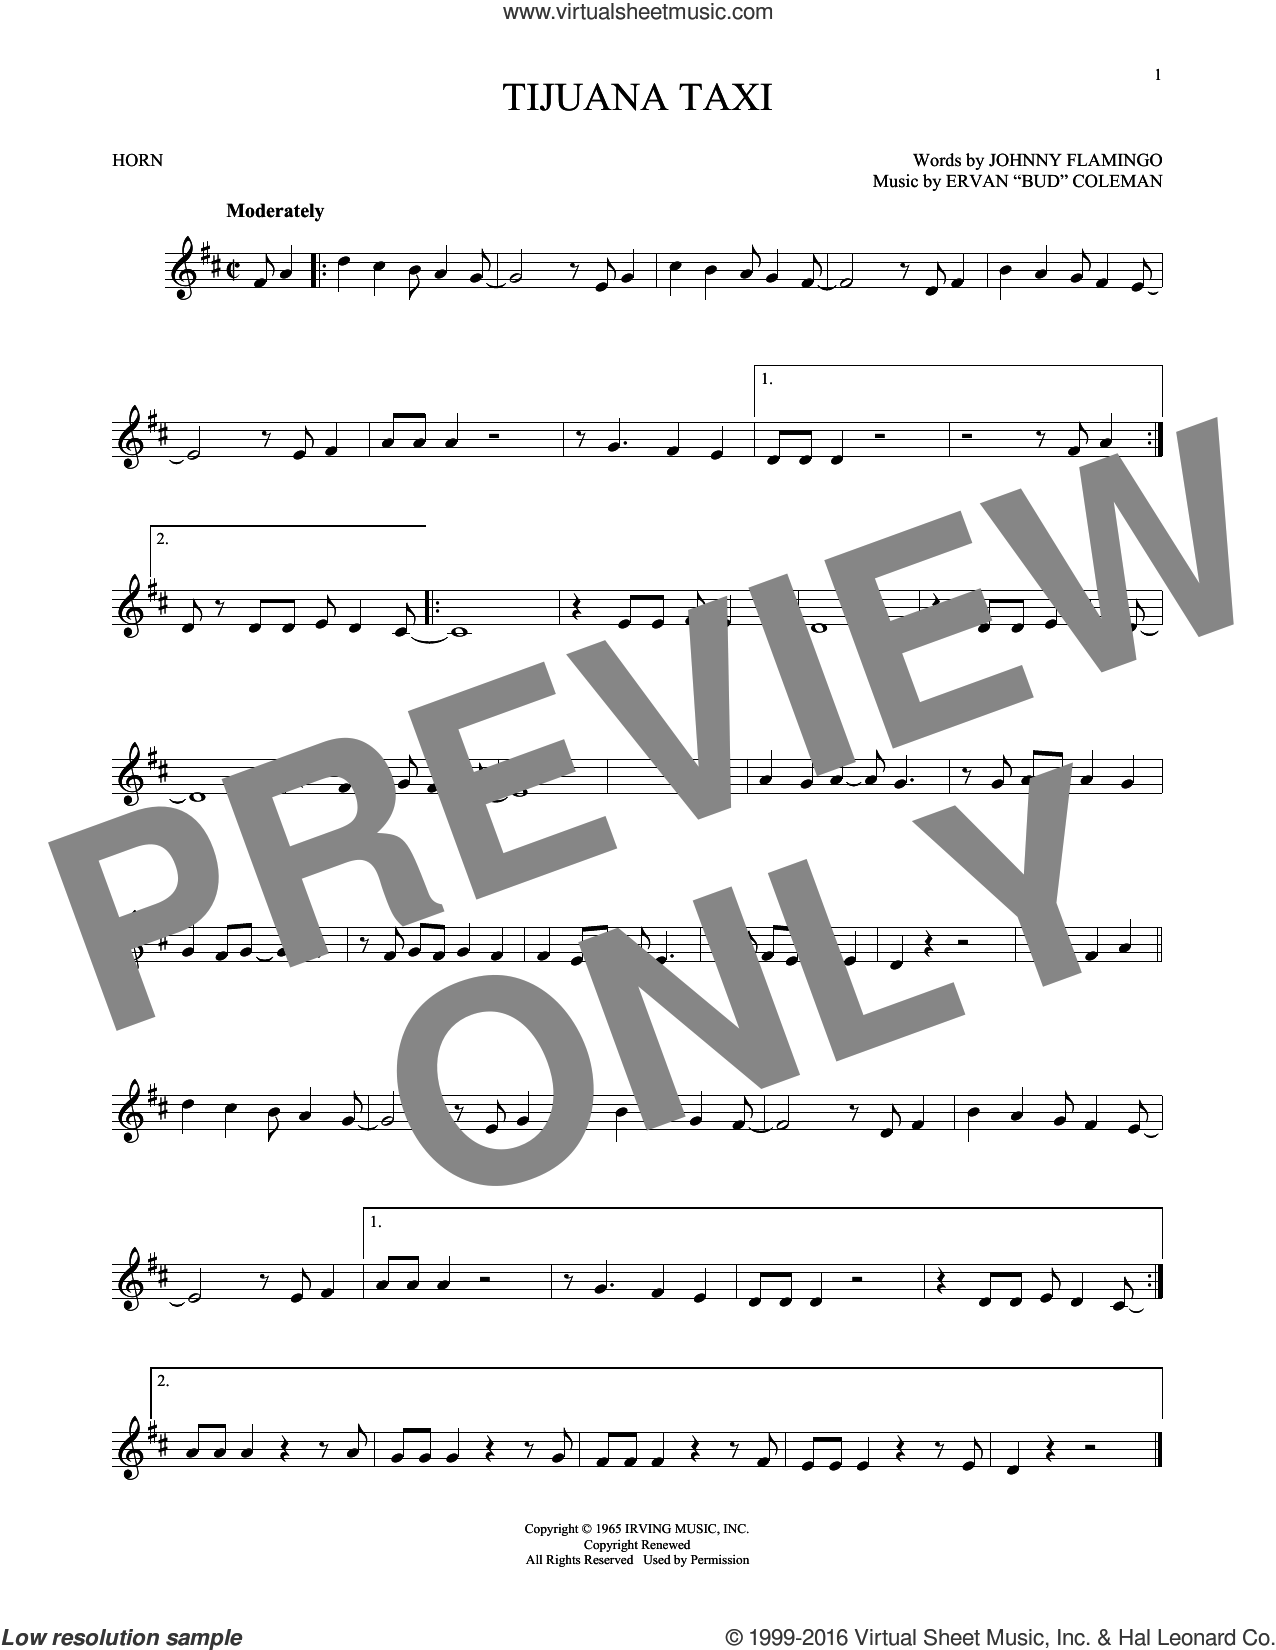 Tijuana Taxi sheet music for horn solo by Johnny Flamingo and Ervan